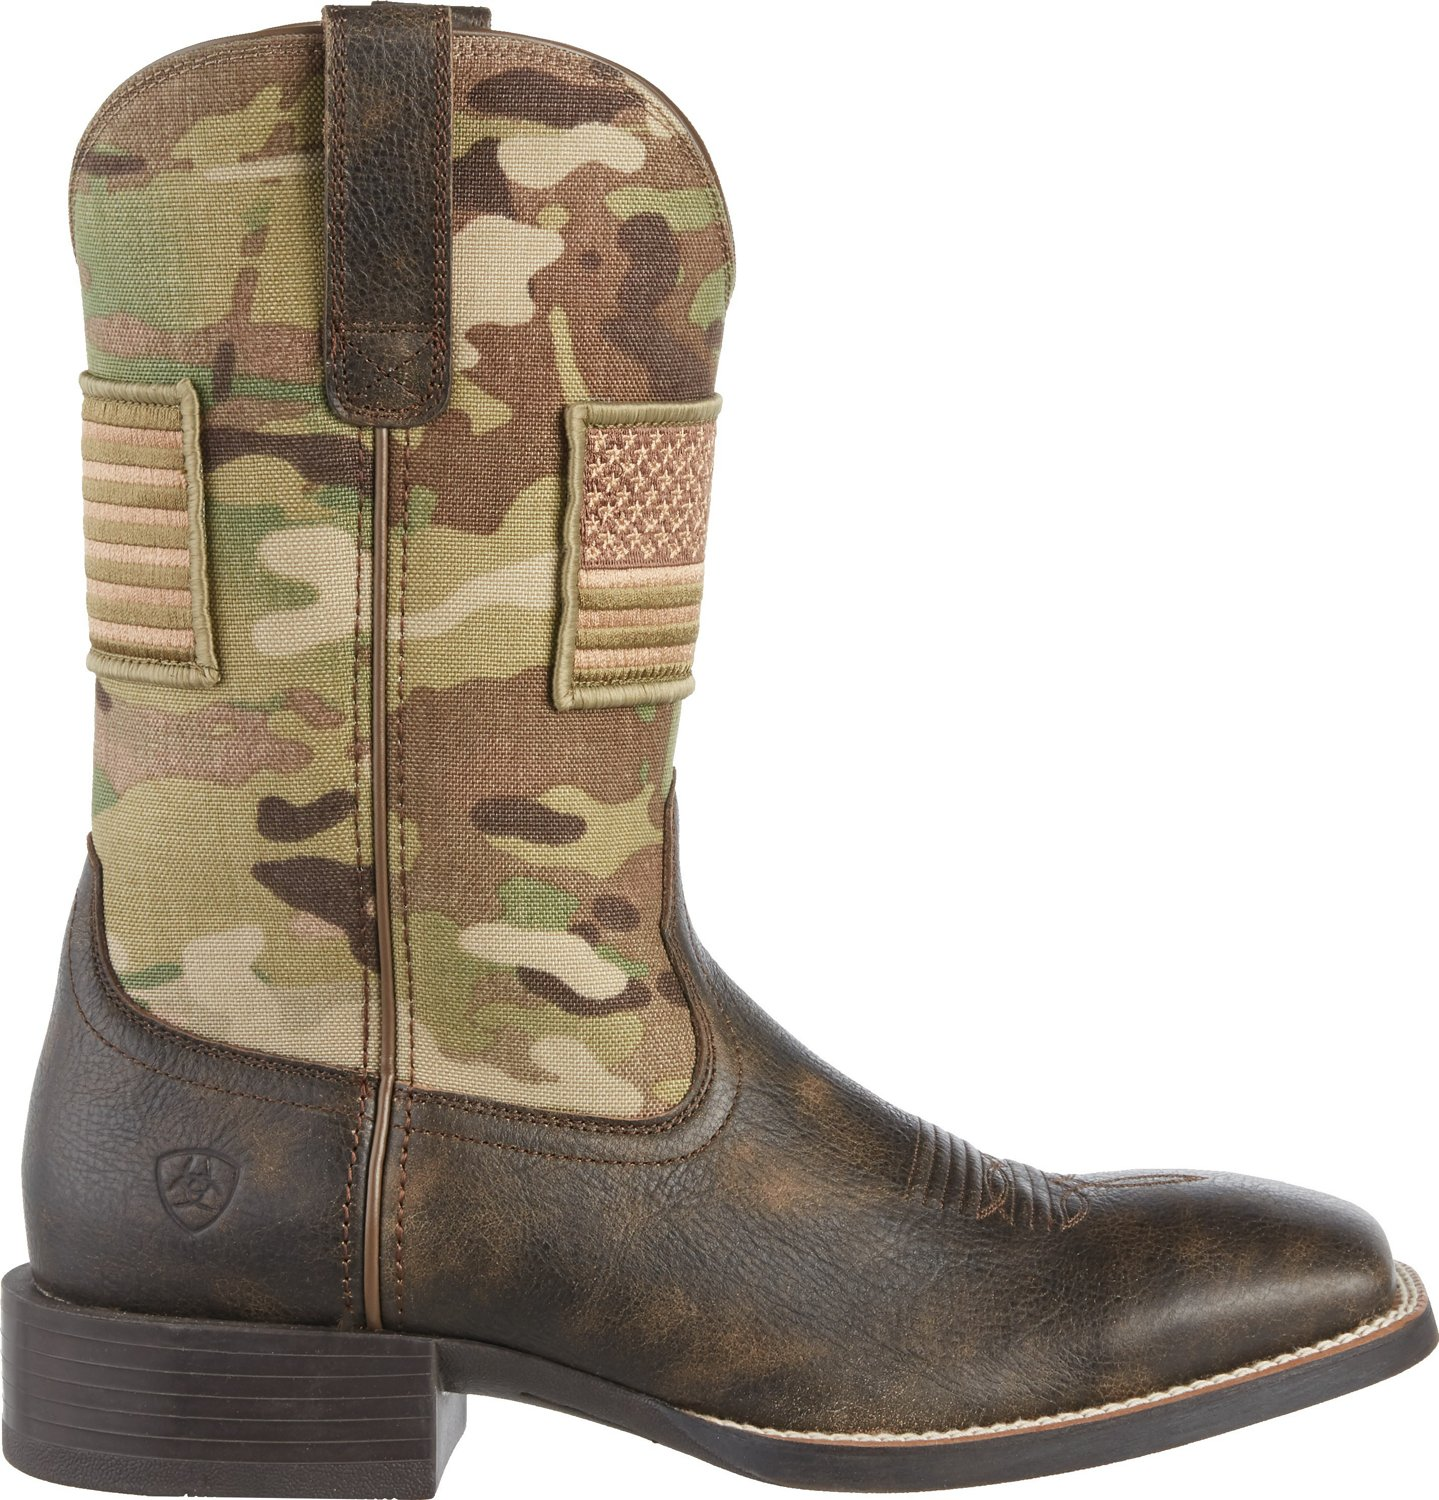 7c847cd934b5 Ariat Men s Sport Patriot Cowboy Boots